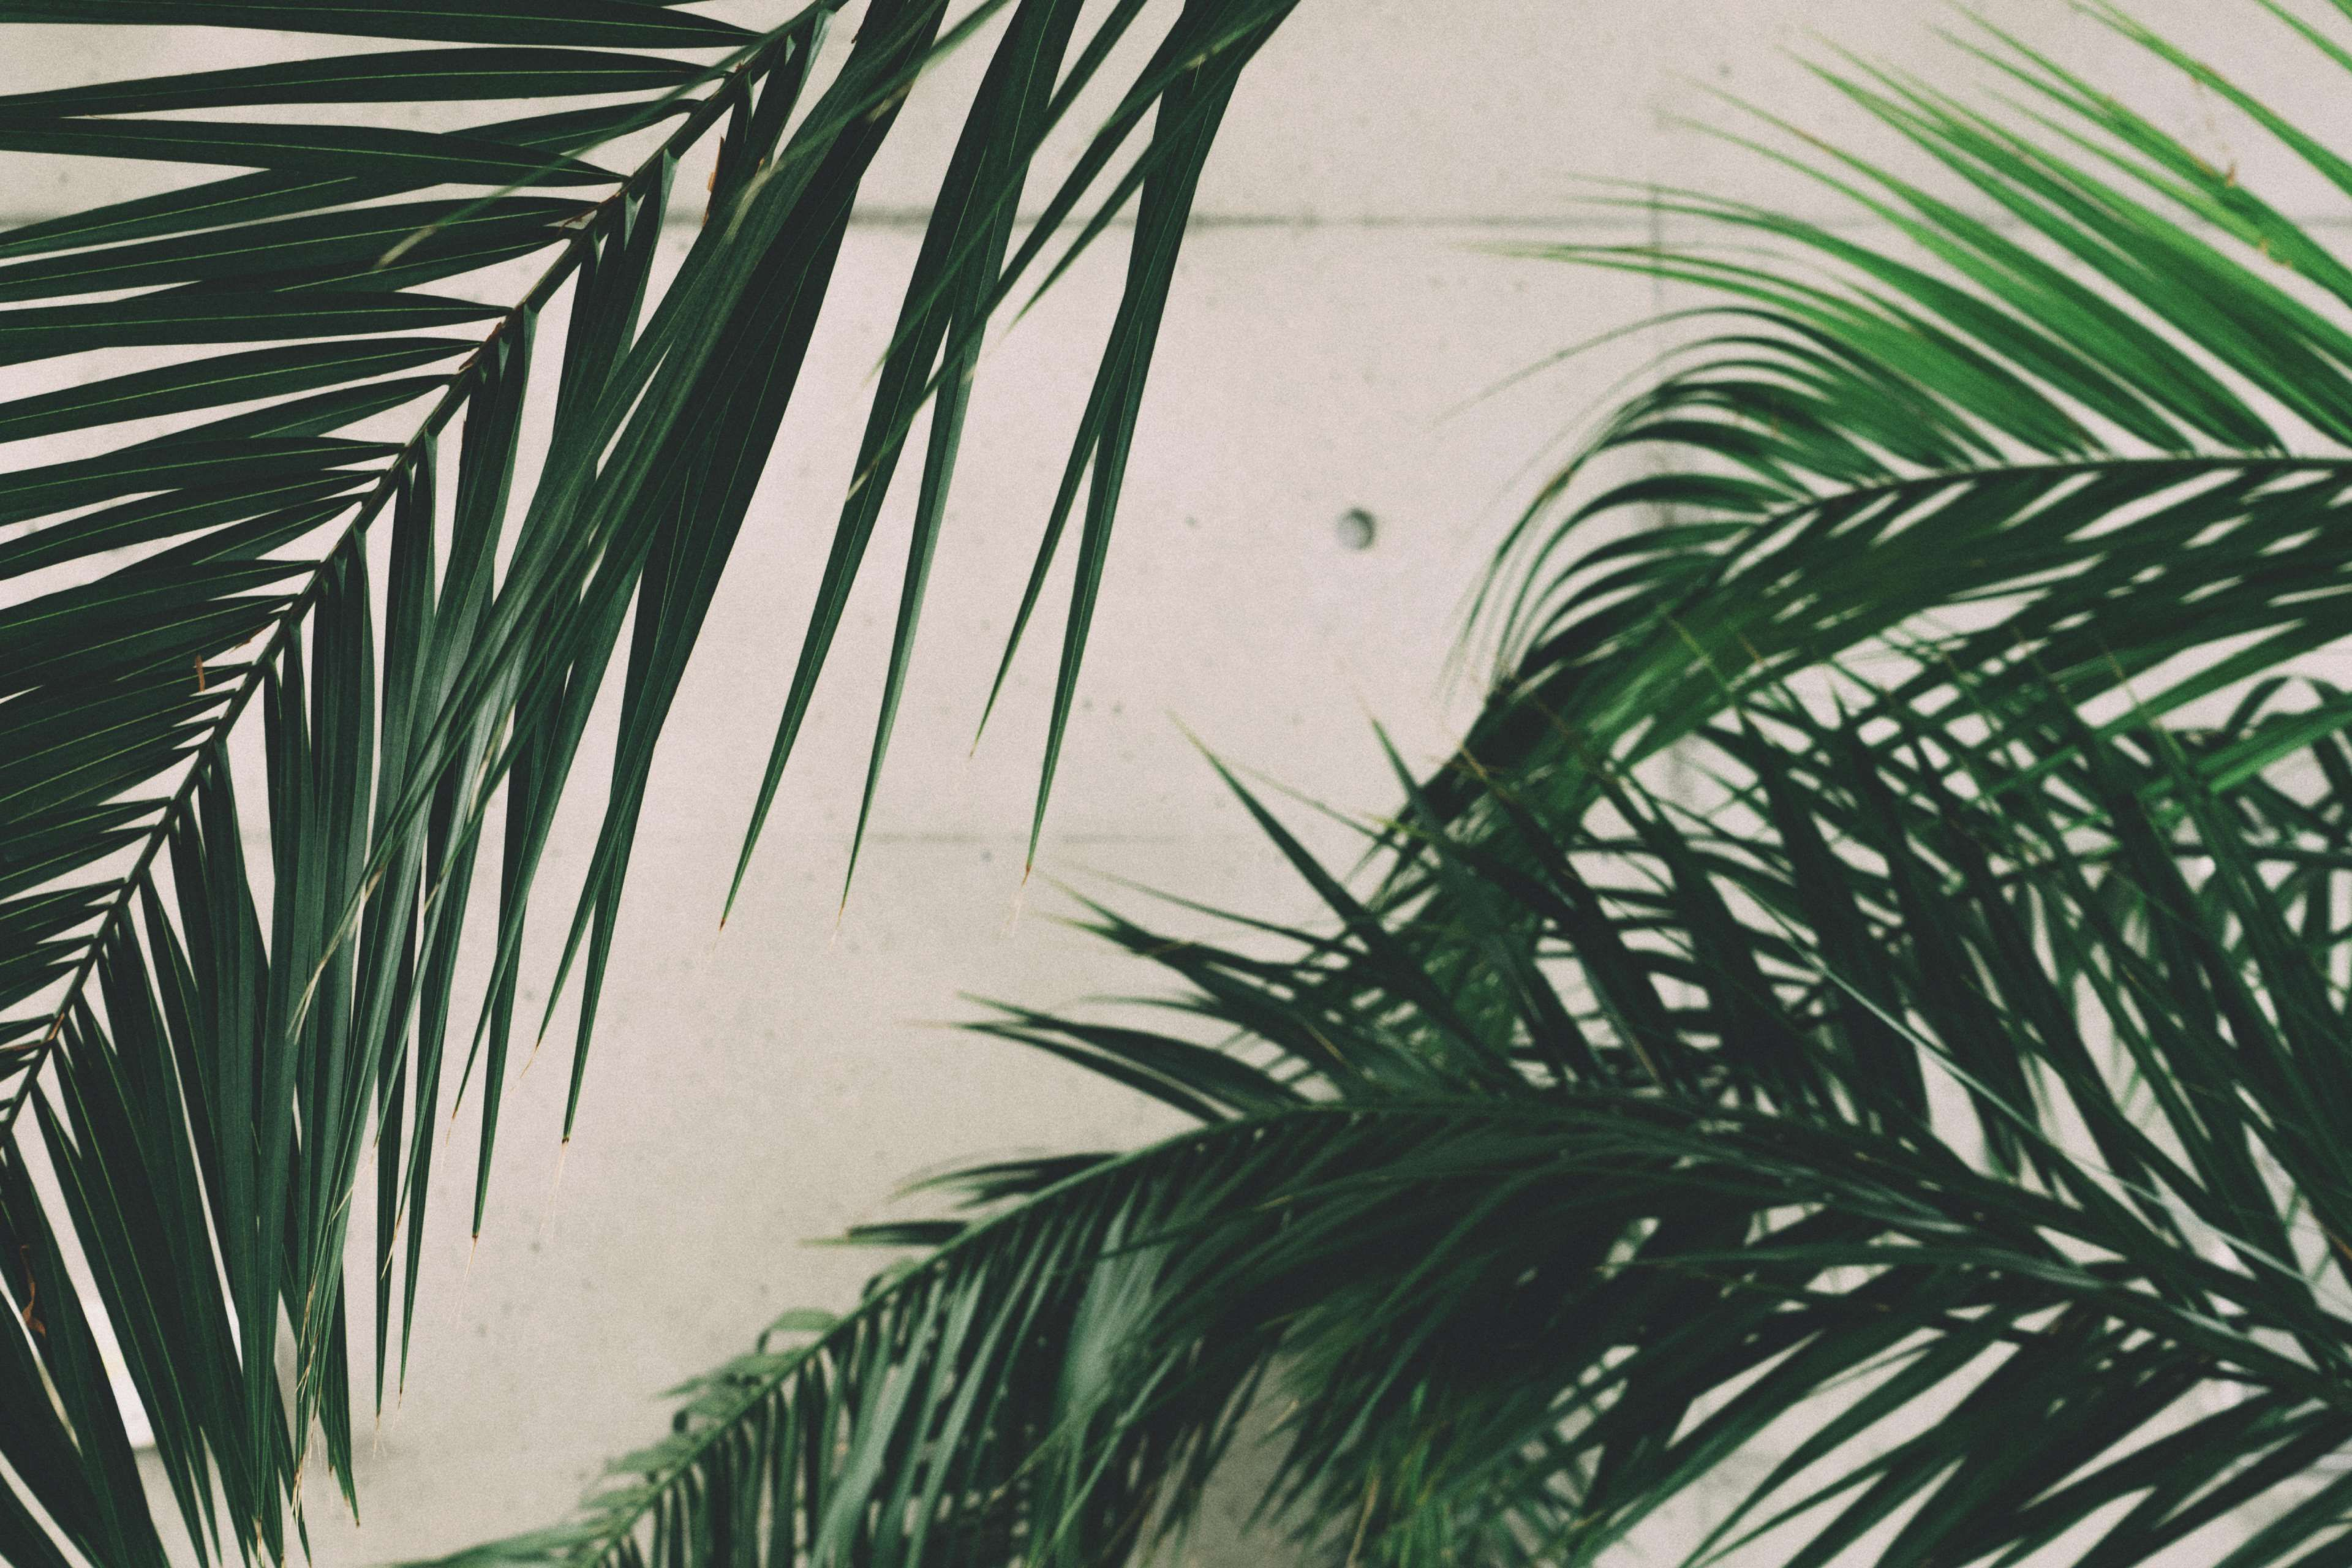 close up concrete green growth leaves nature outdoors palm 3840x2560